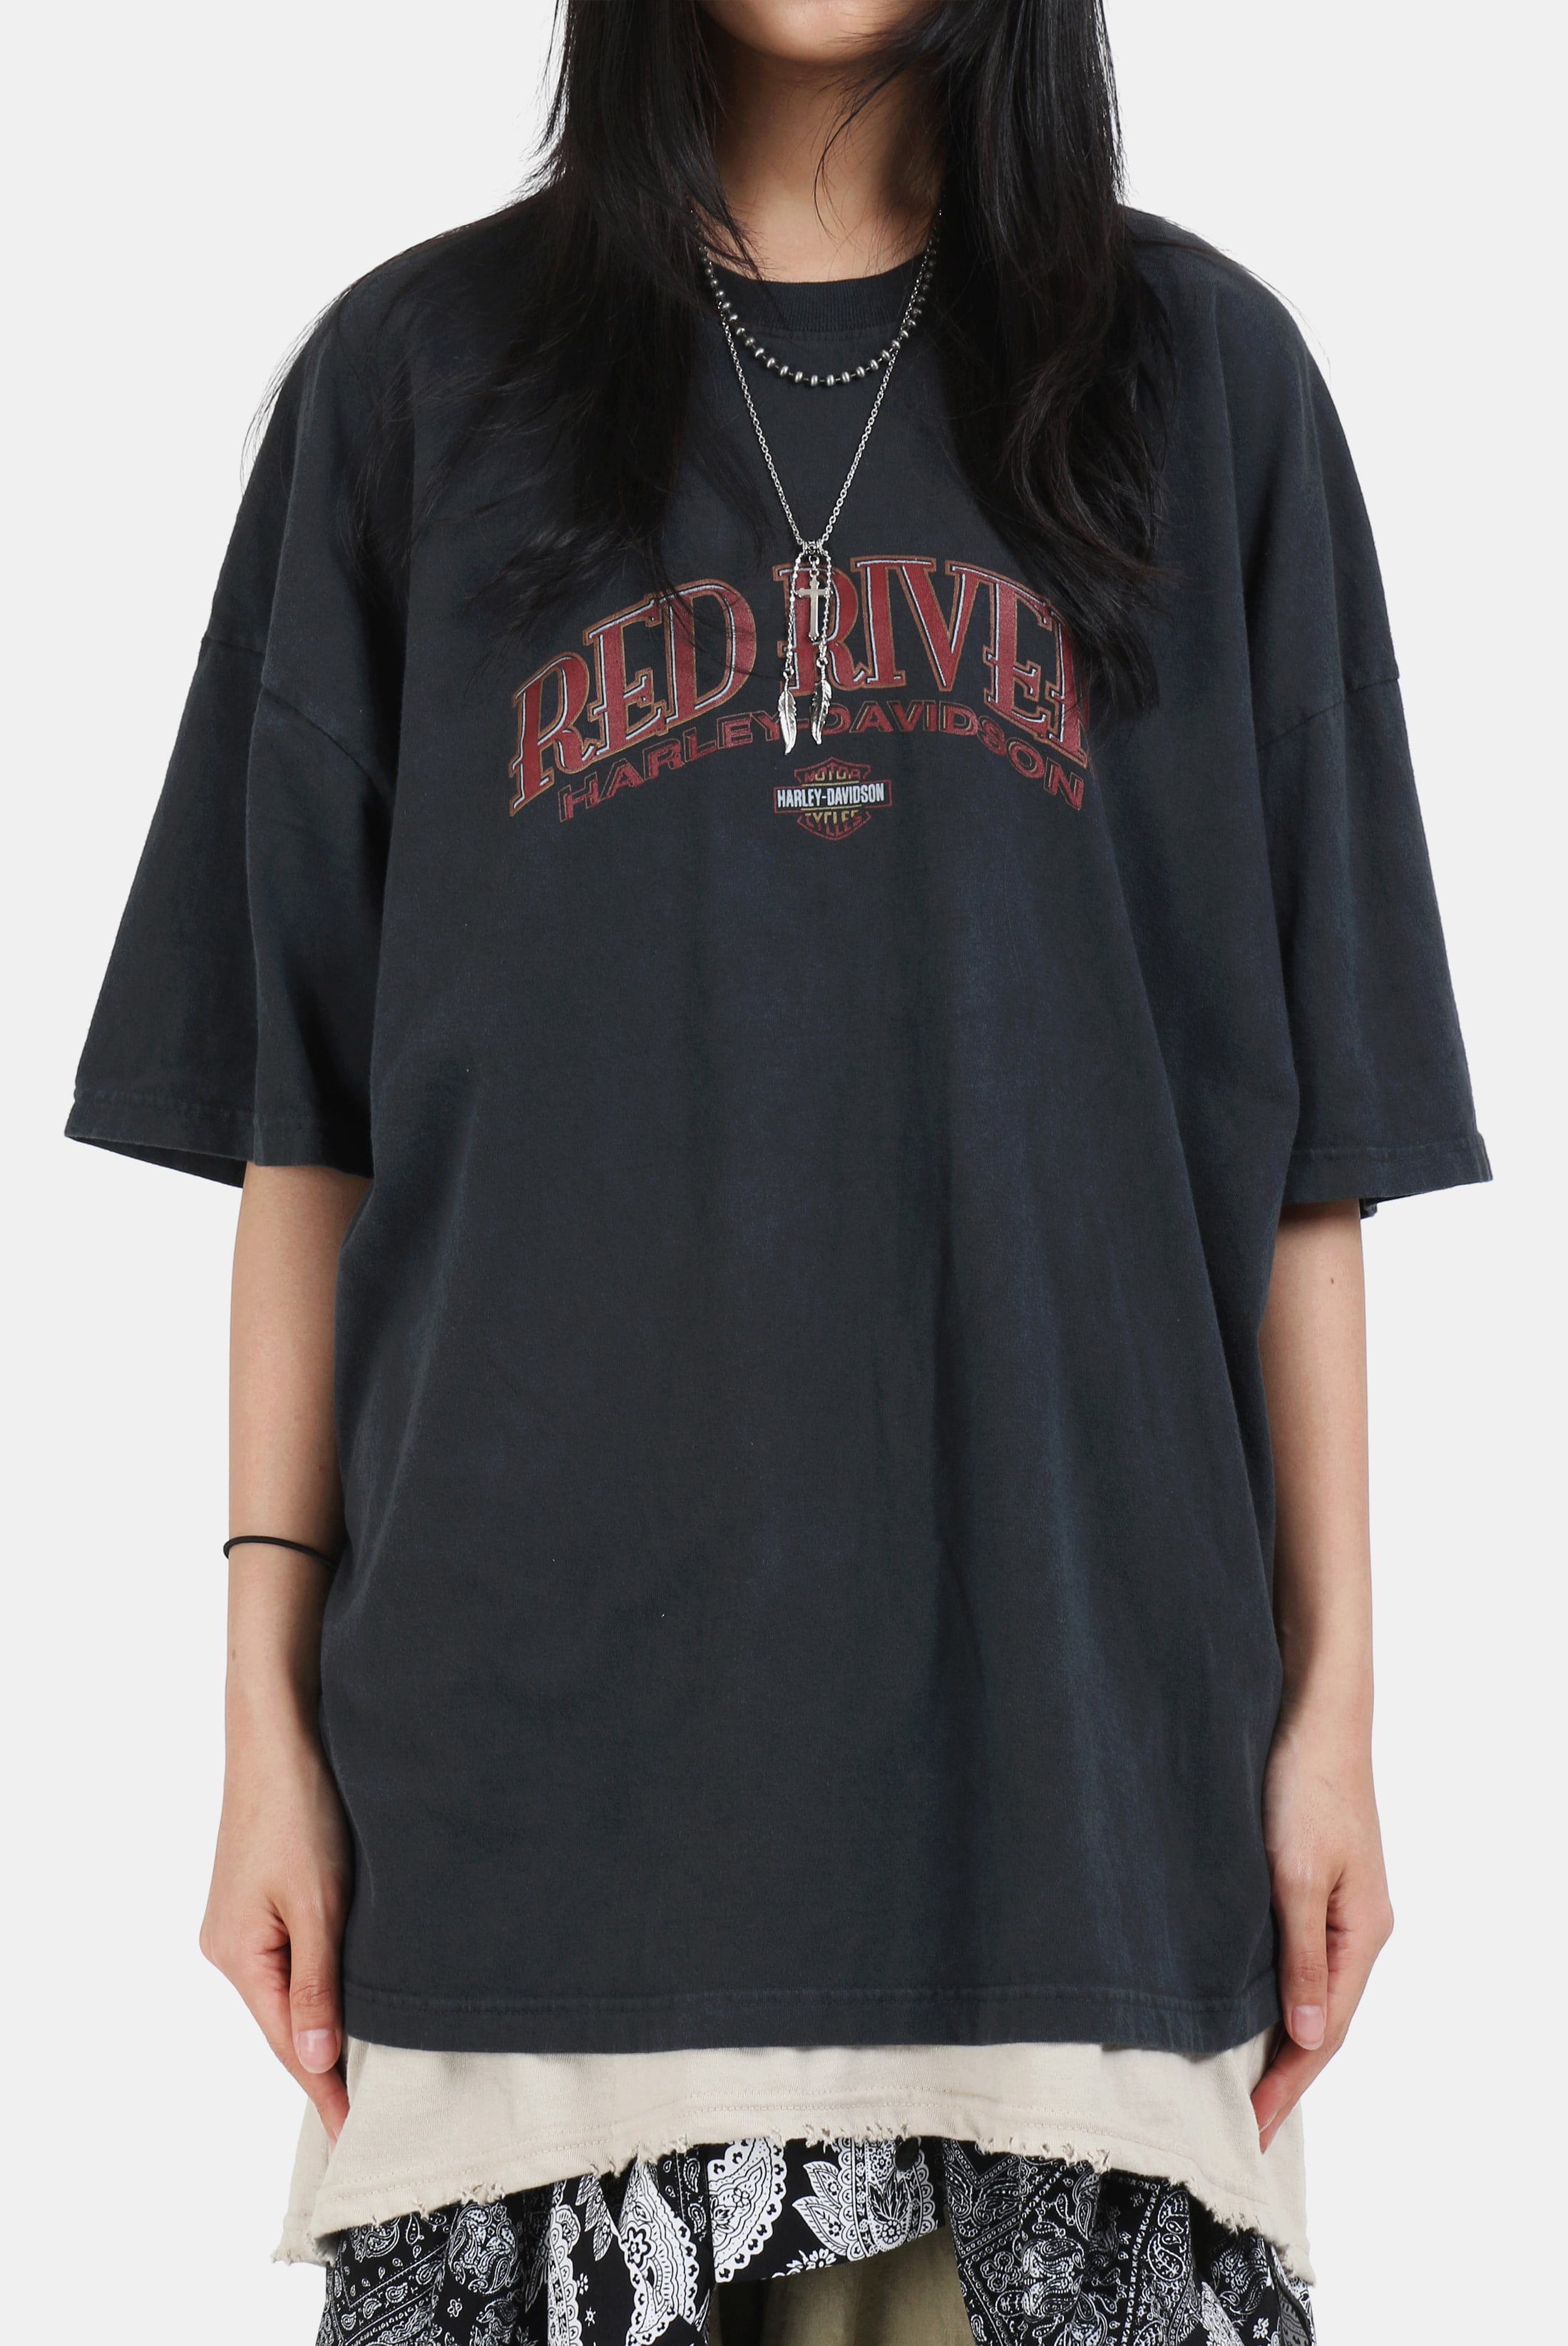 Red river_Dying T [Restock]